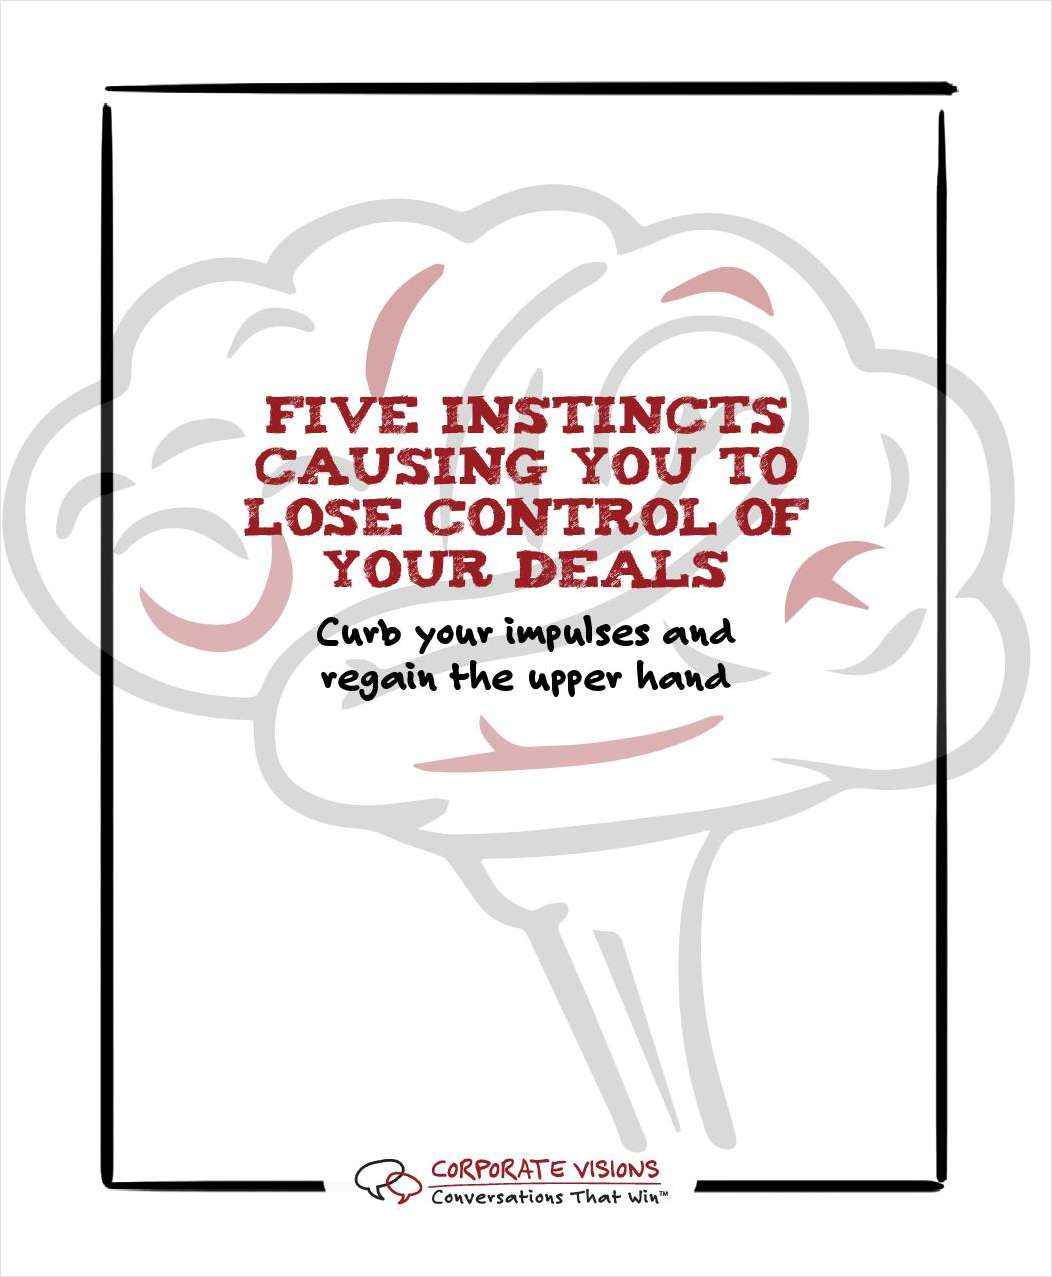 Five Instincts Causing You to Lose Control of Your Deals